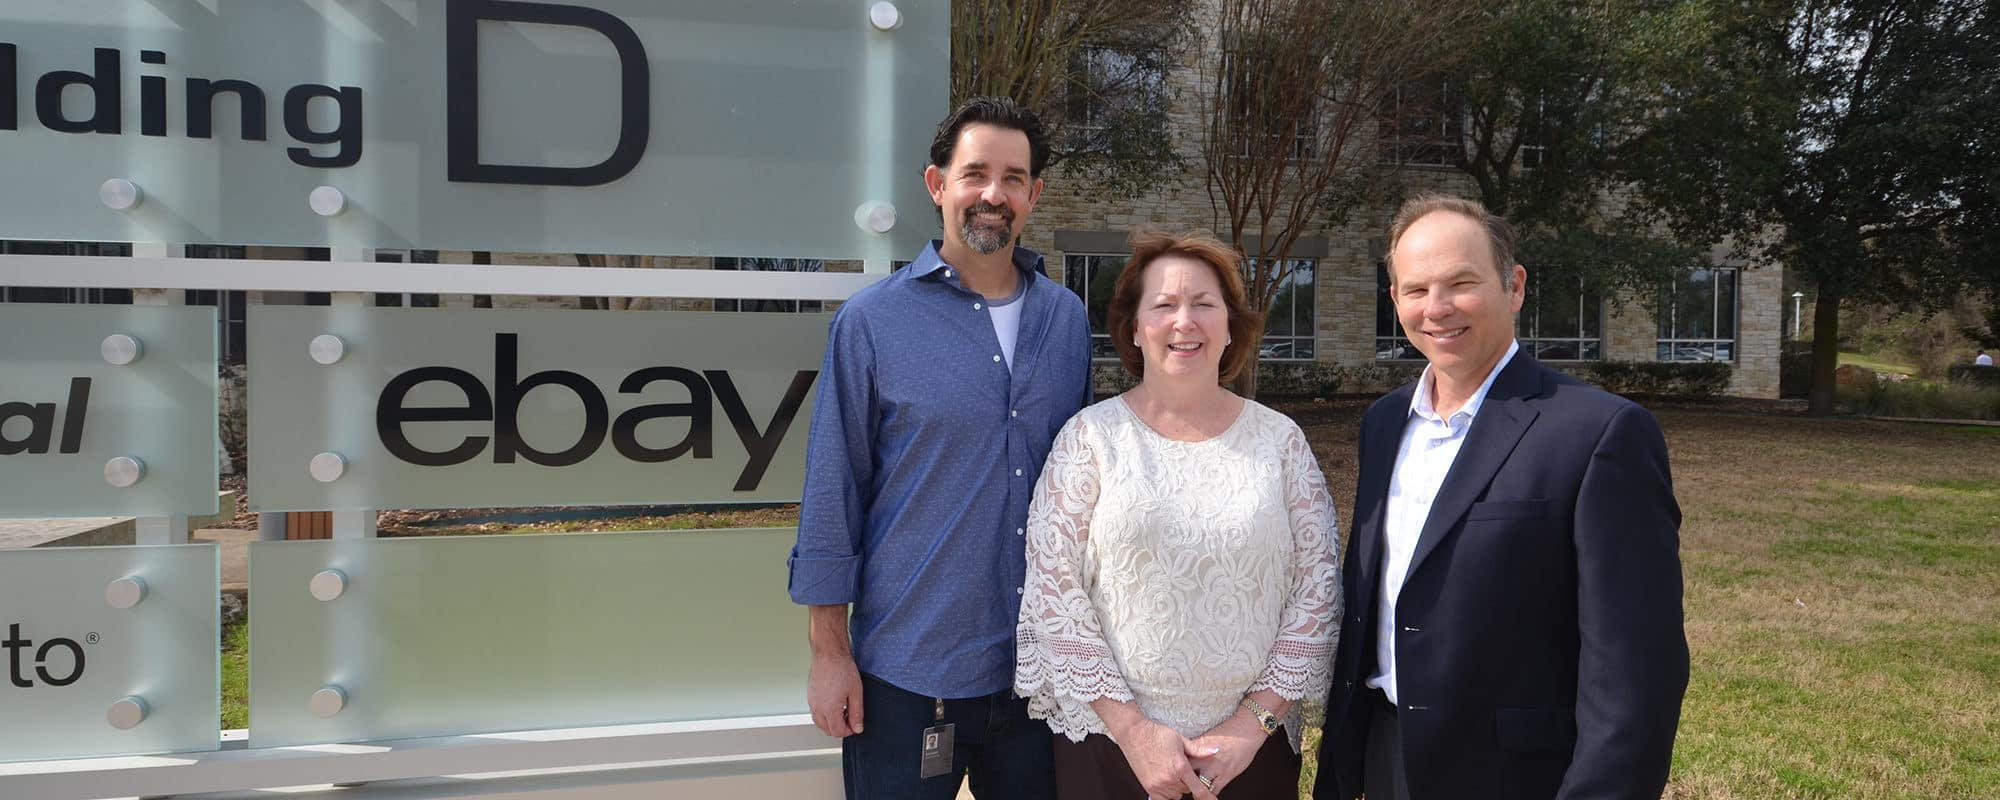 eBay signs lease at 7700 Parmer | eBay's Zachary Jacobson, Accesso's Kelly Smith and AQUILA's David Putman